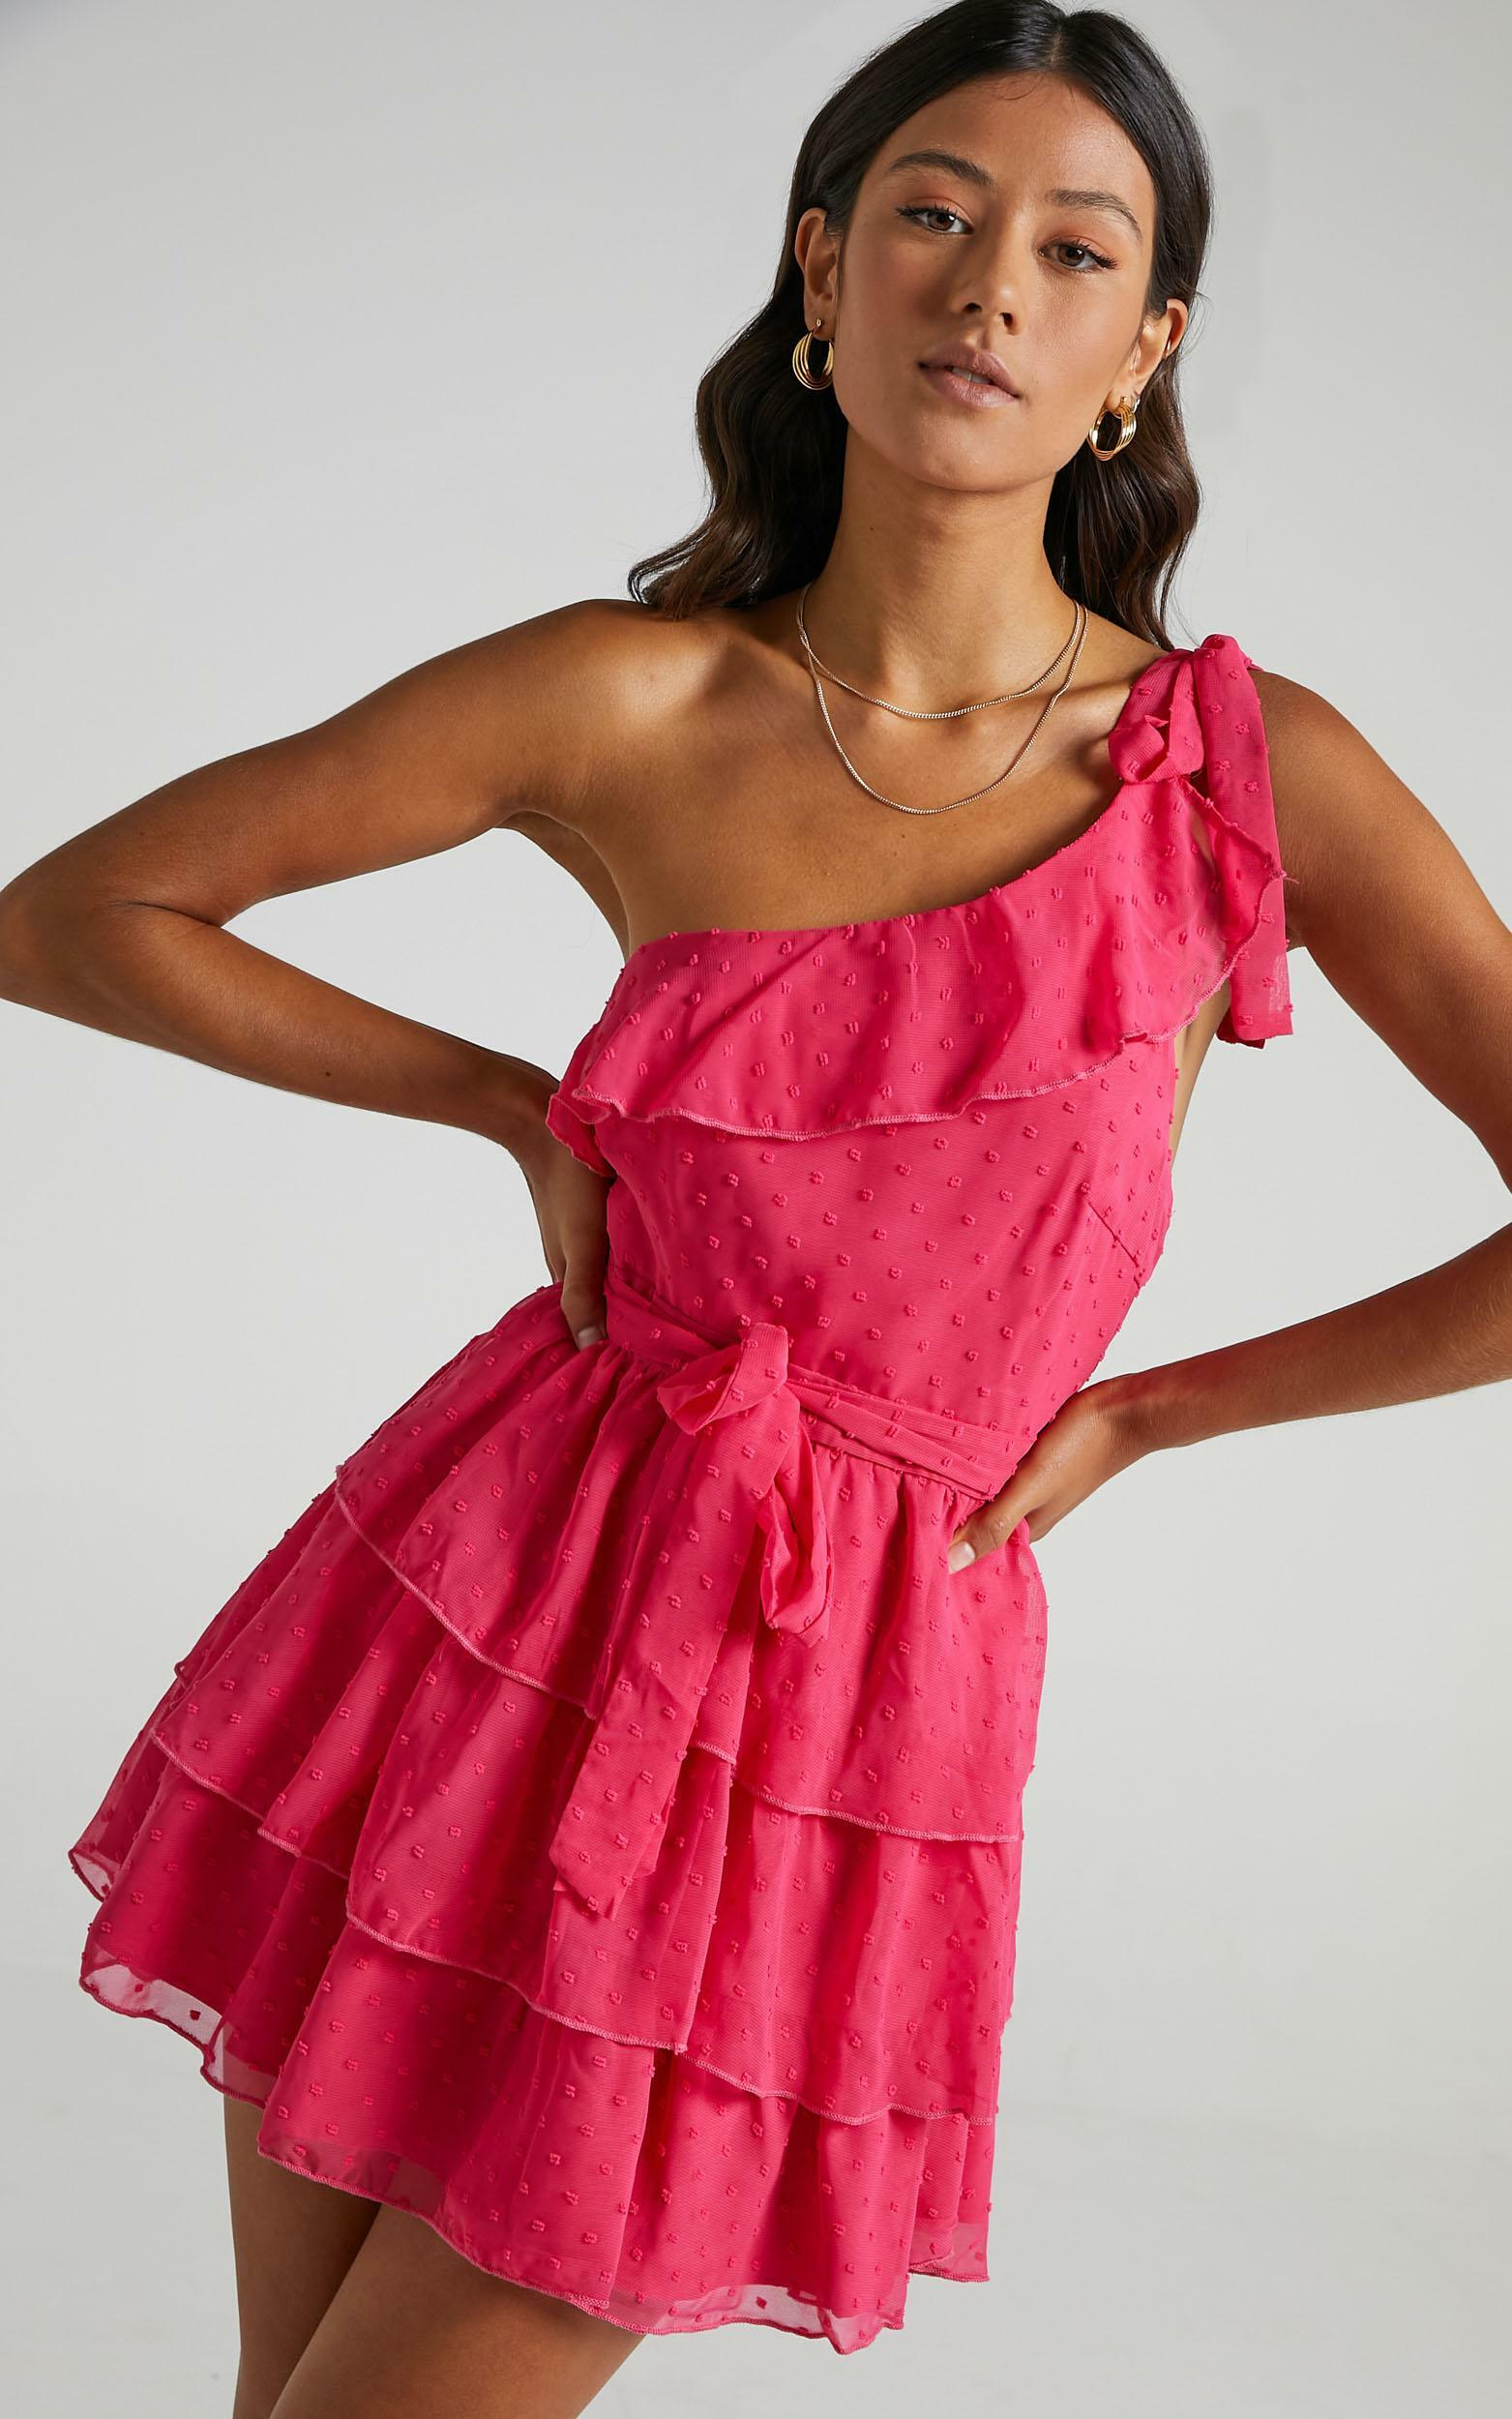 Darling I Am A Daydream Dress in Hot Pink - 16, PNK6, hi-res image number null